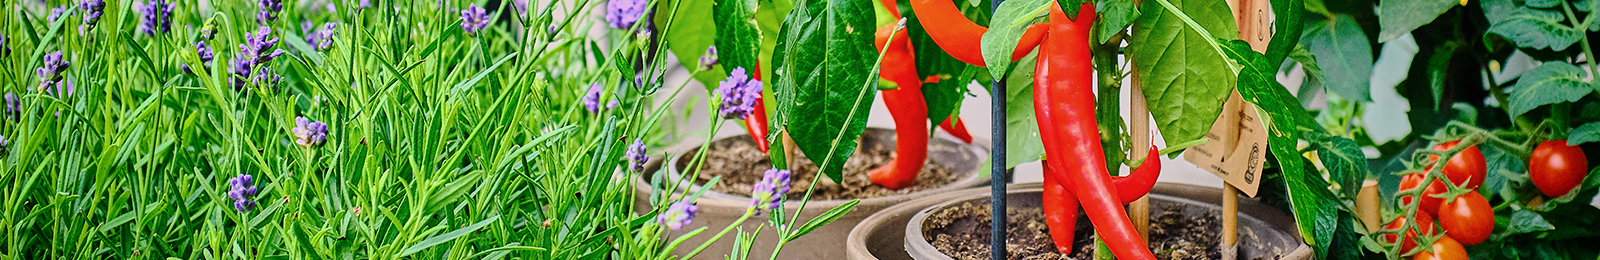 How to Grow Food in Containers and Small Spaces